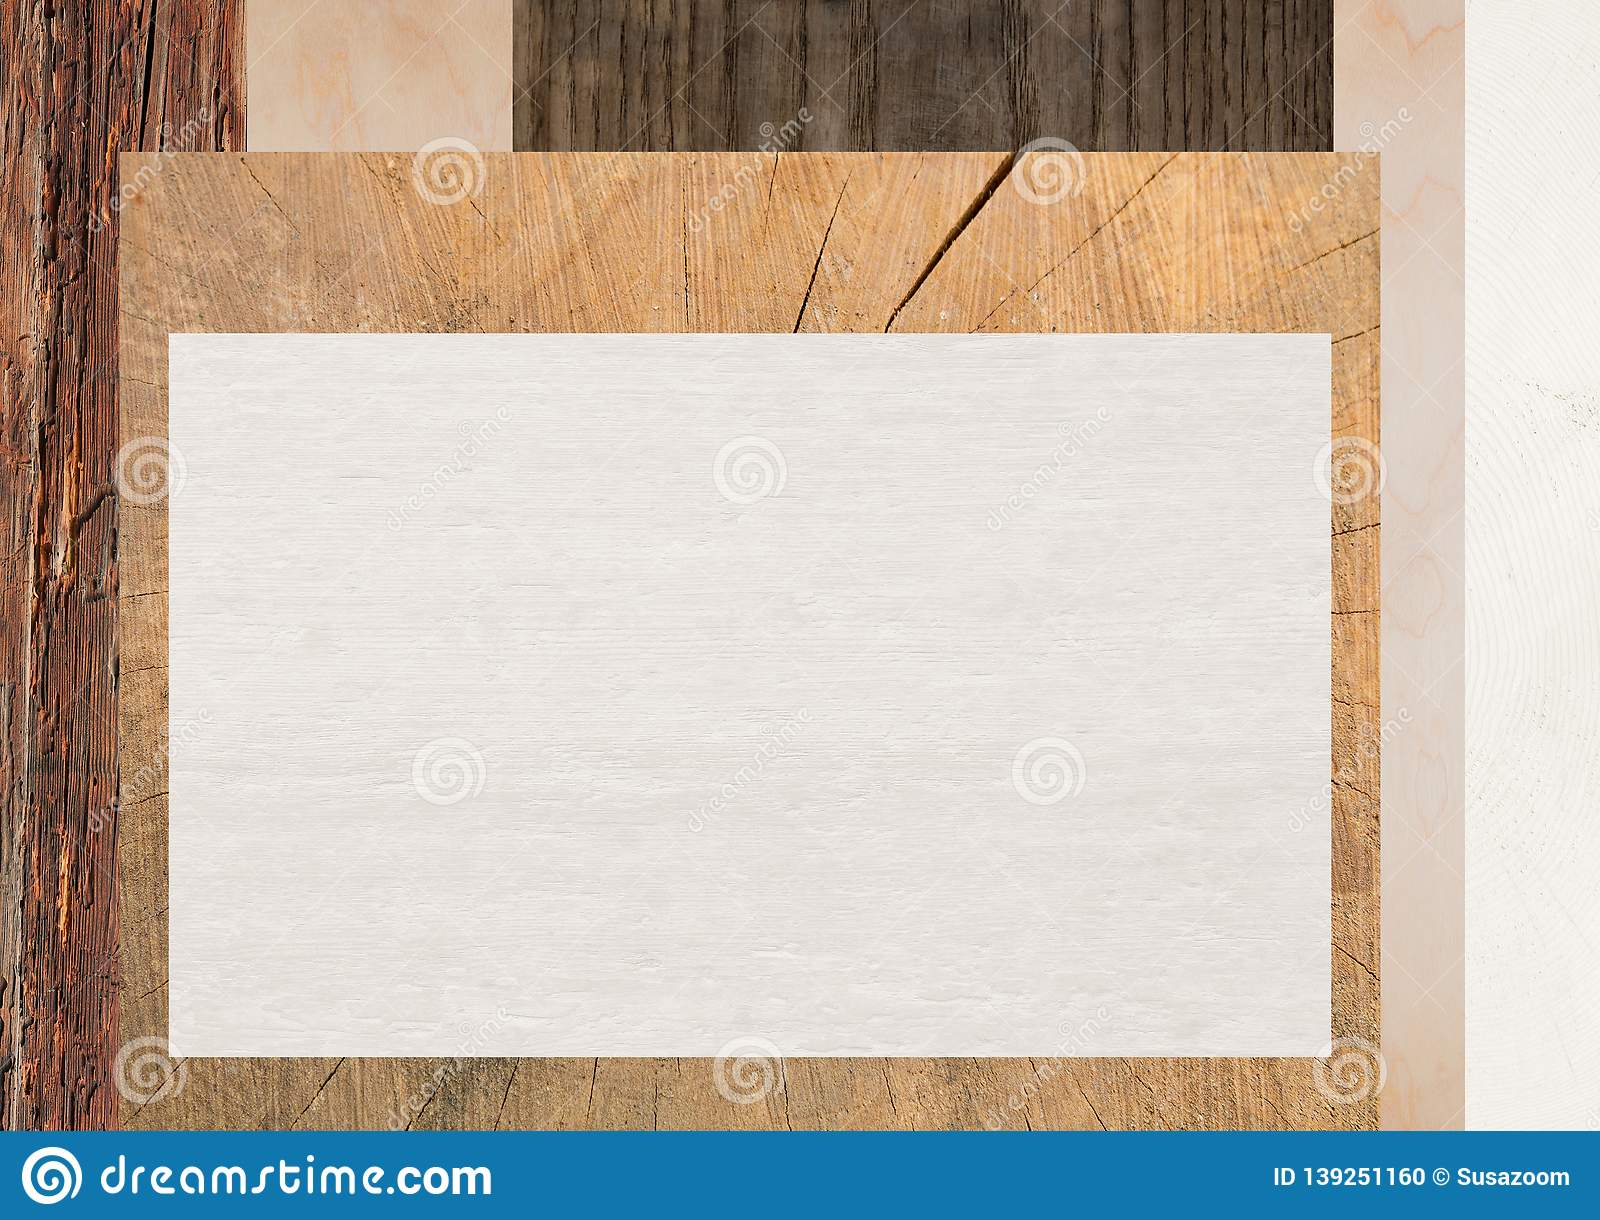 Background with various wooden texture and copy space